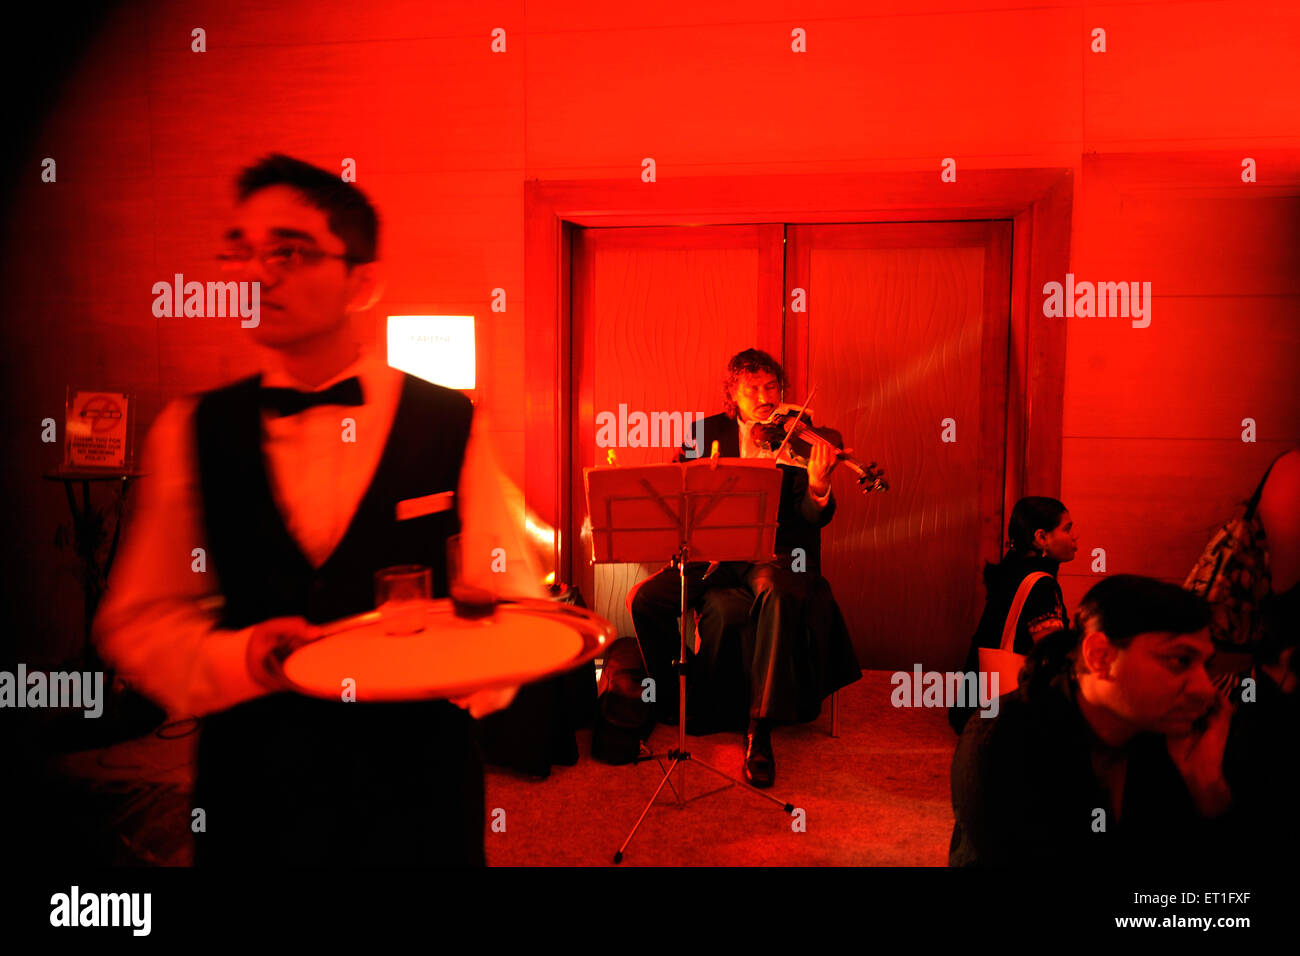 Live music in restaurant ; India NO MR - Stock Image